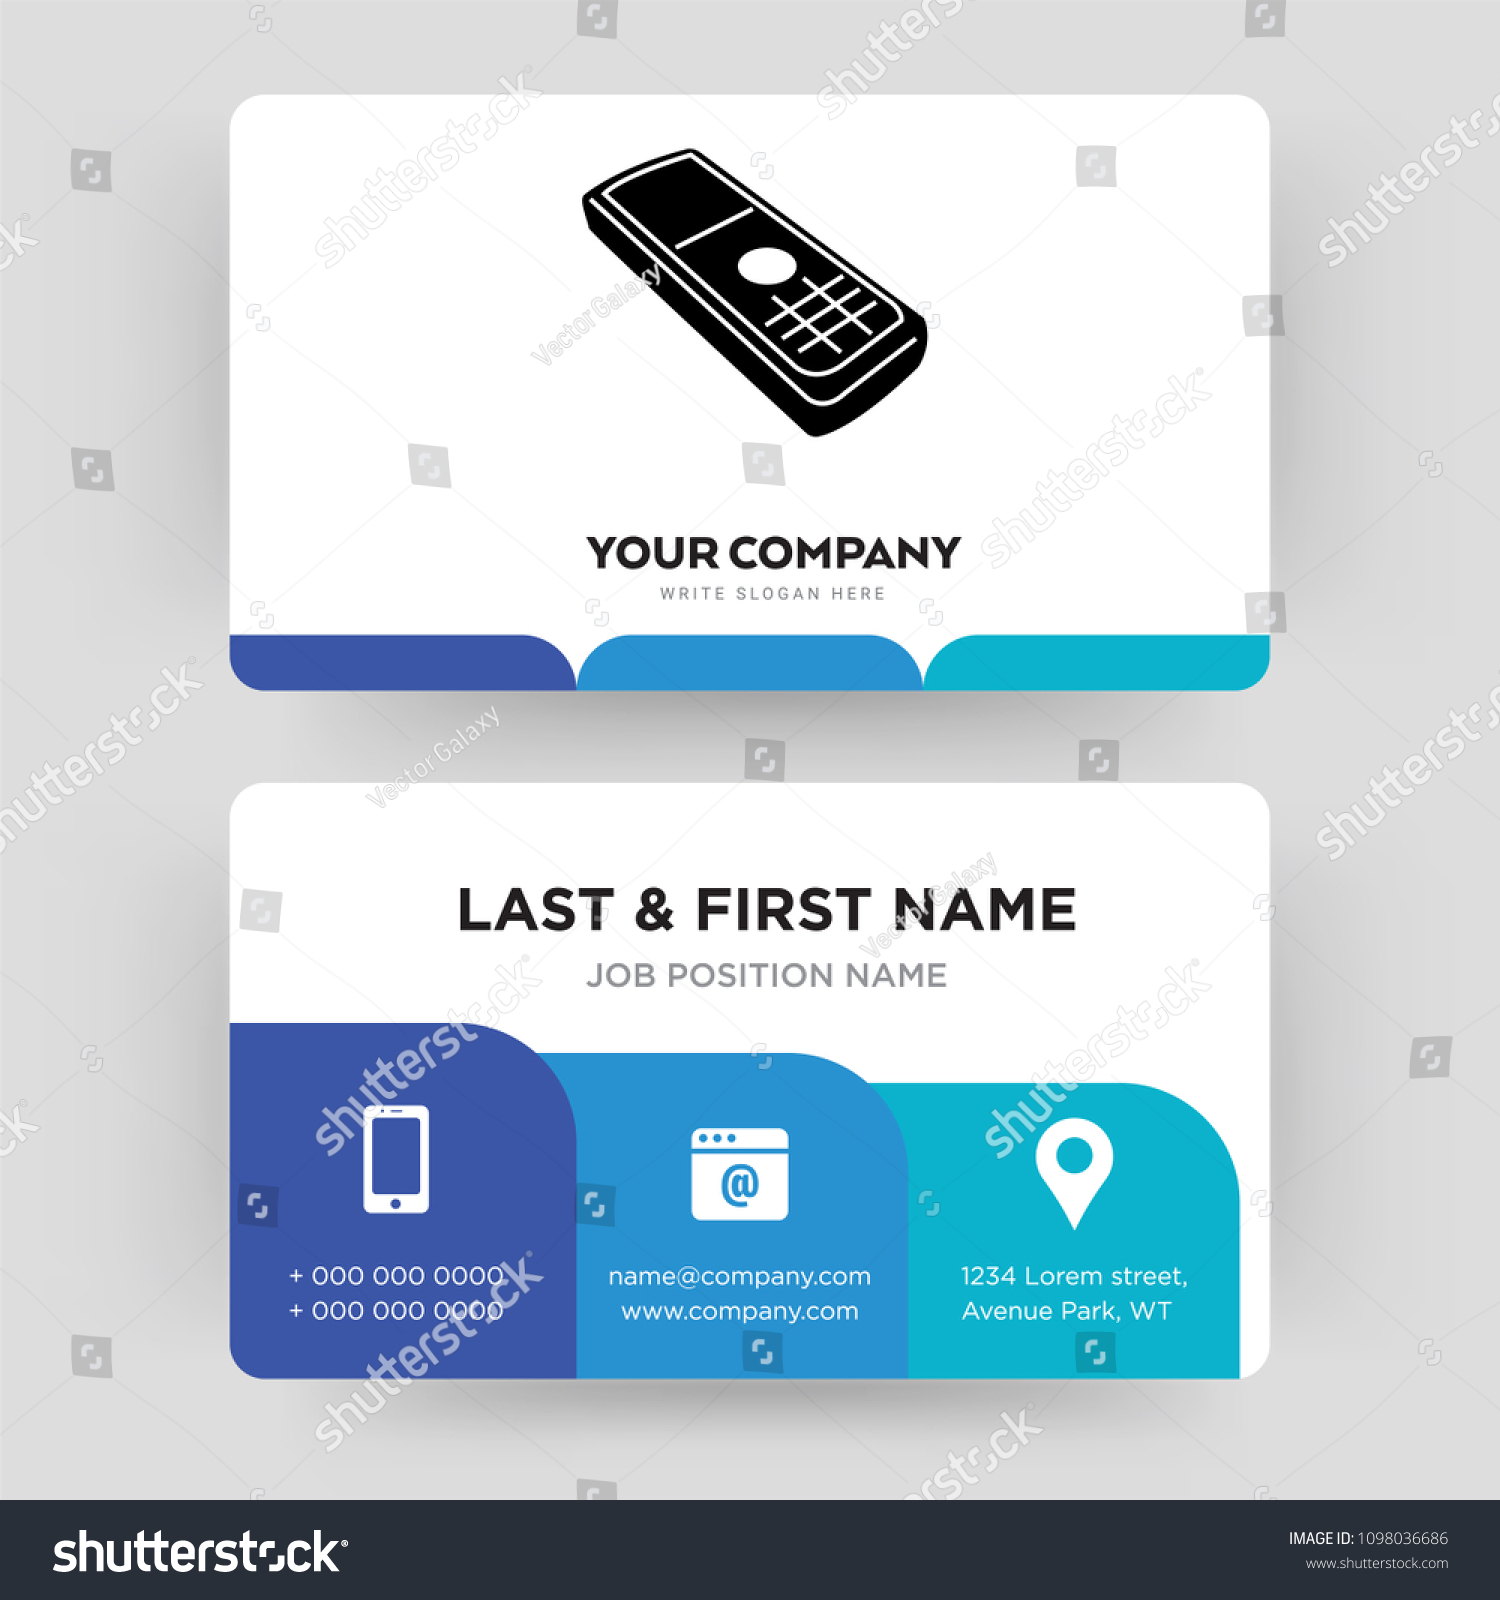 Cell Phone Business Card Design Template Stock Vector HD (Royalty ...